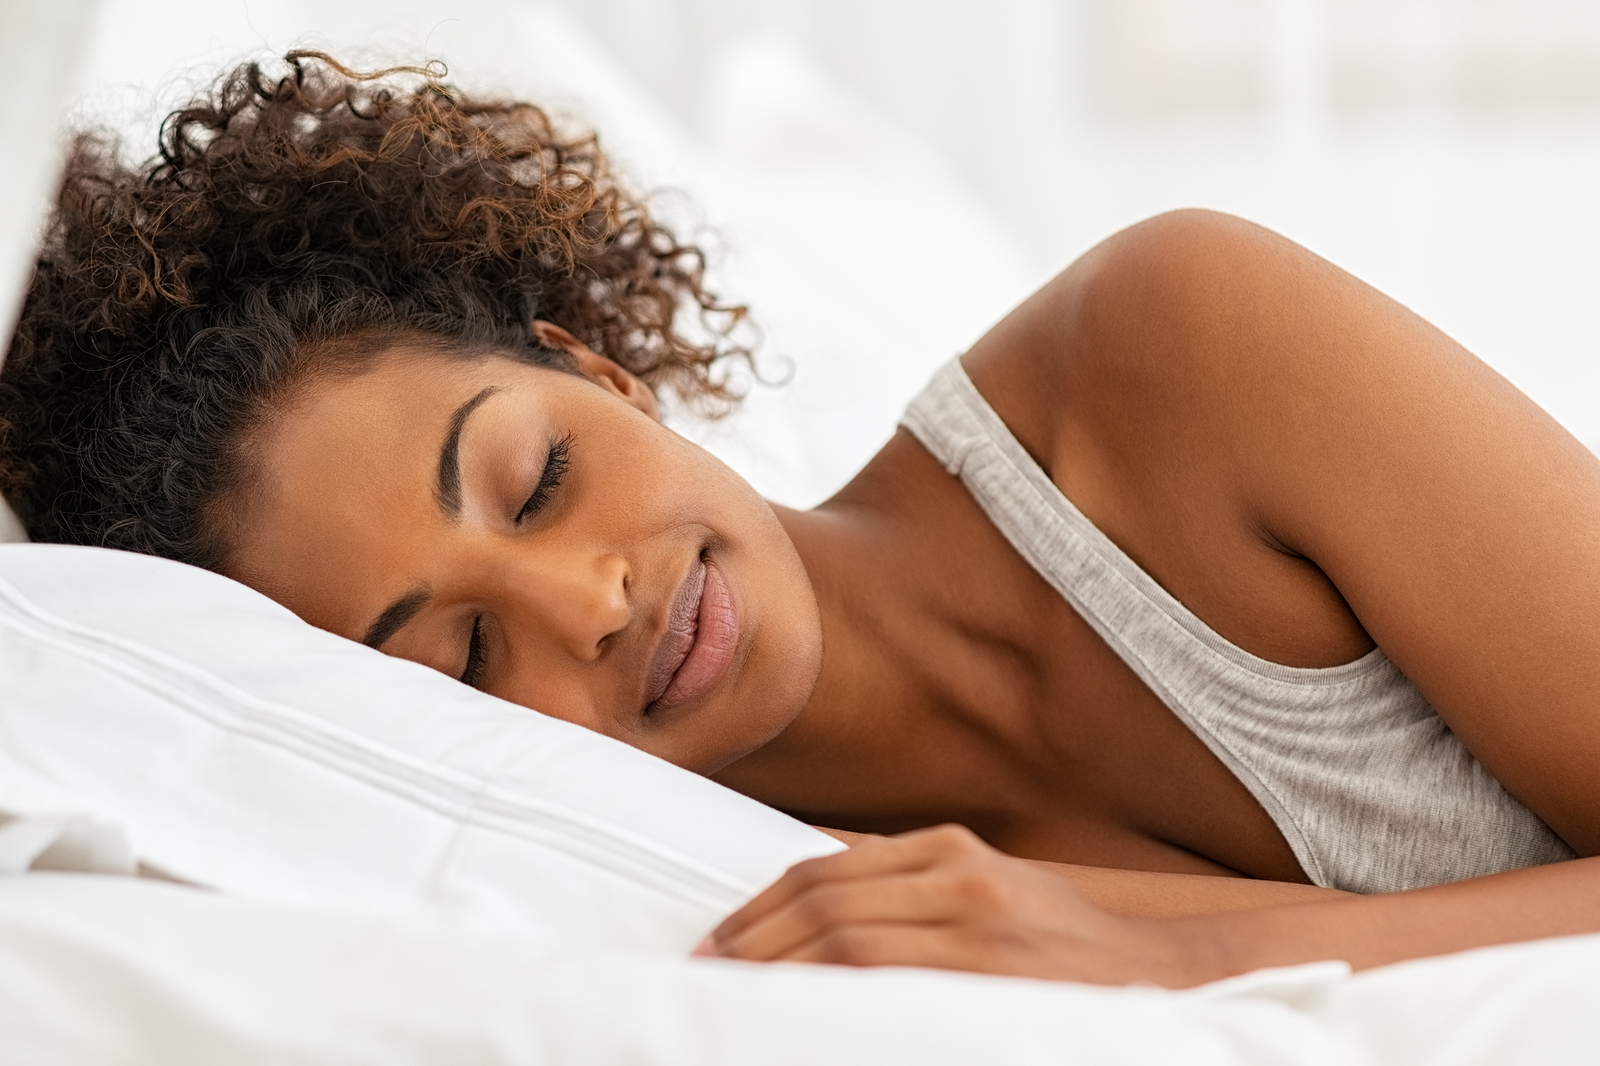 bigstock-Beautiful-young-woman-sleeping-324970987